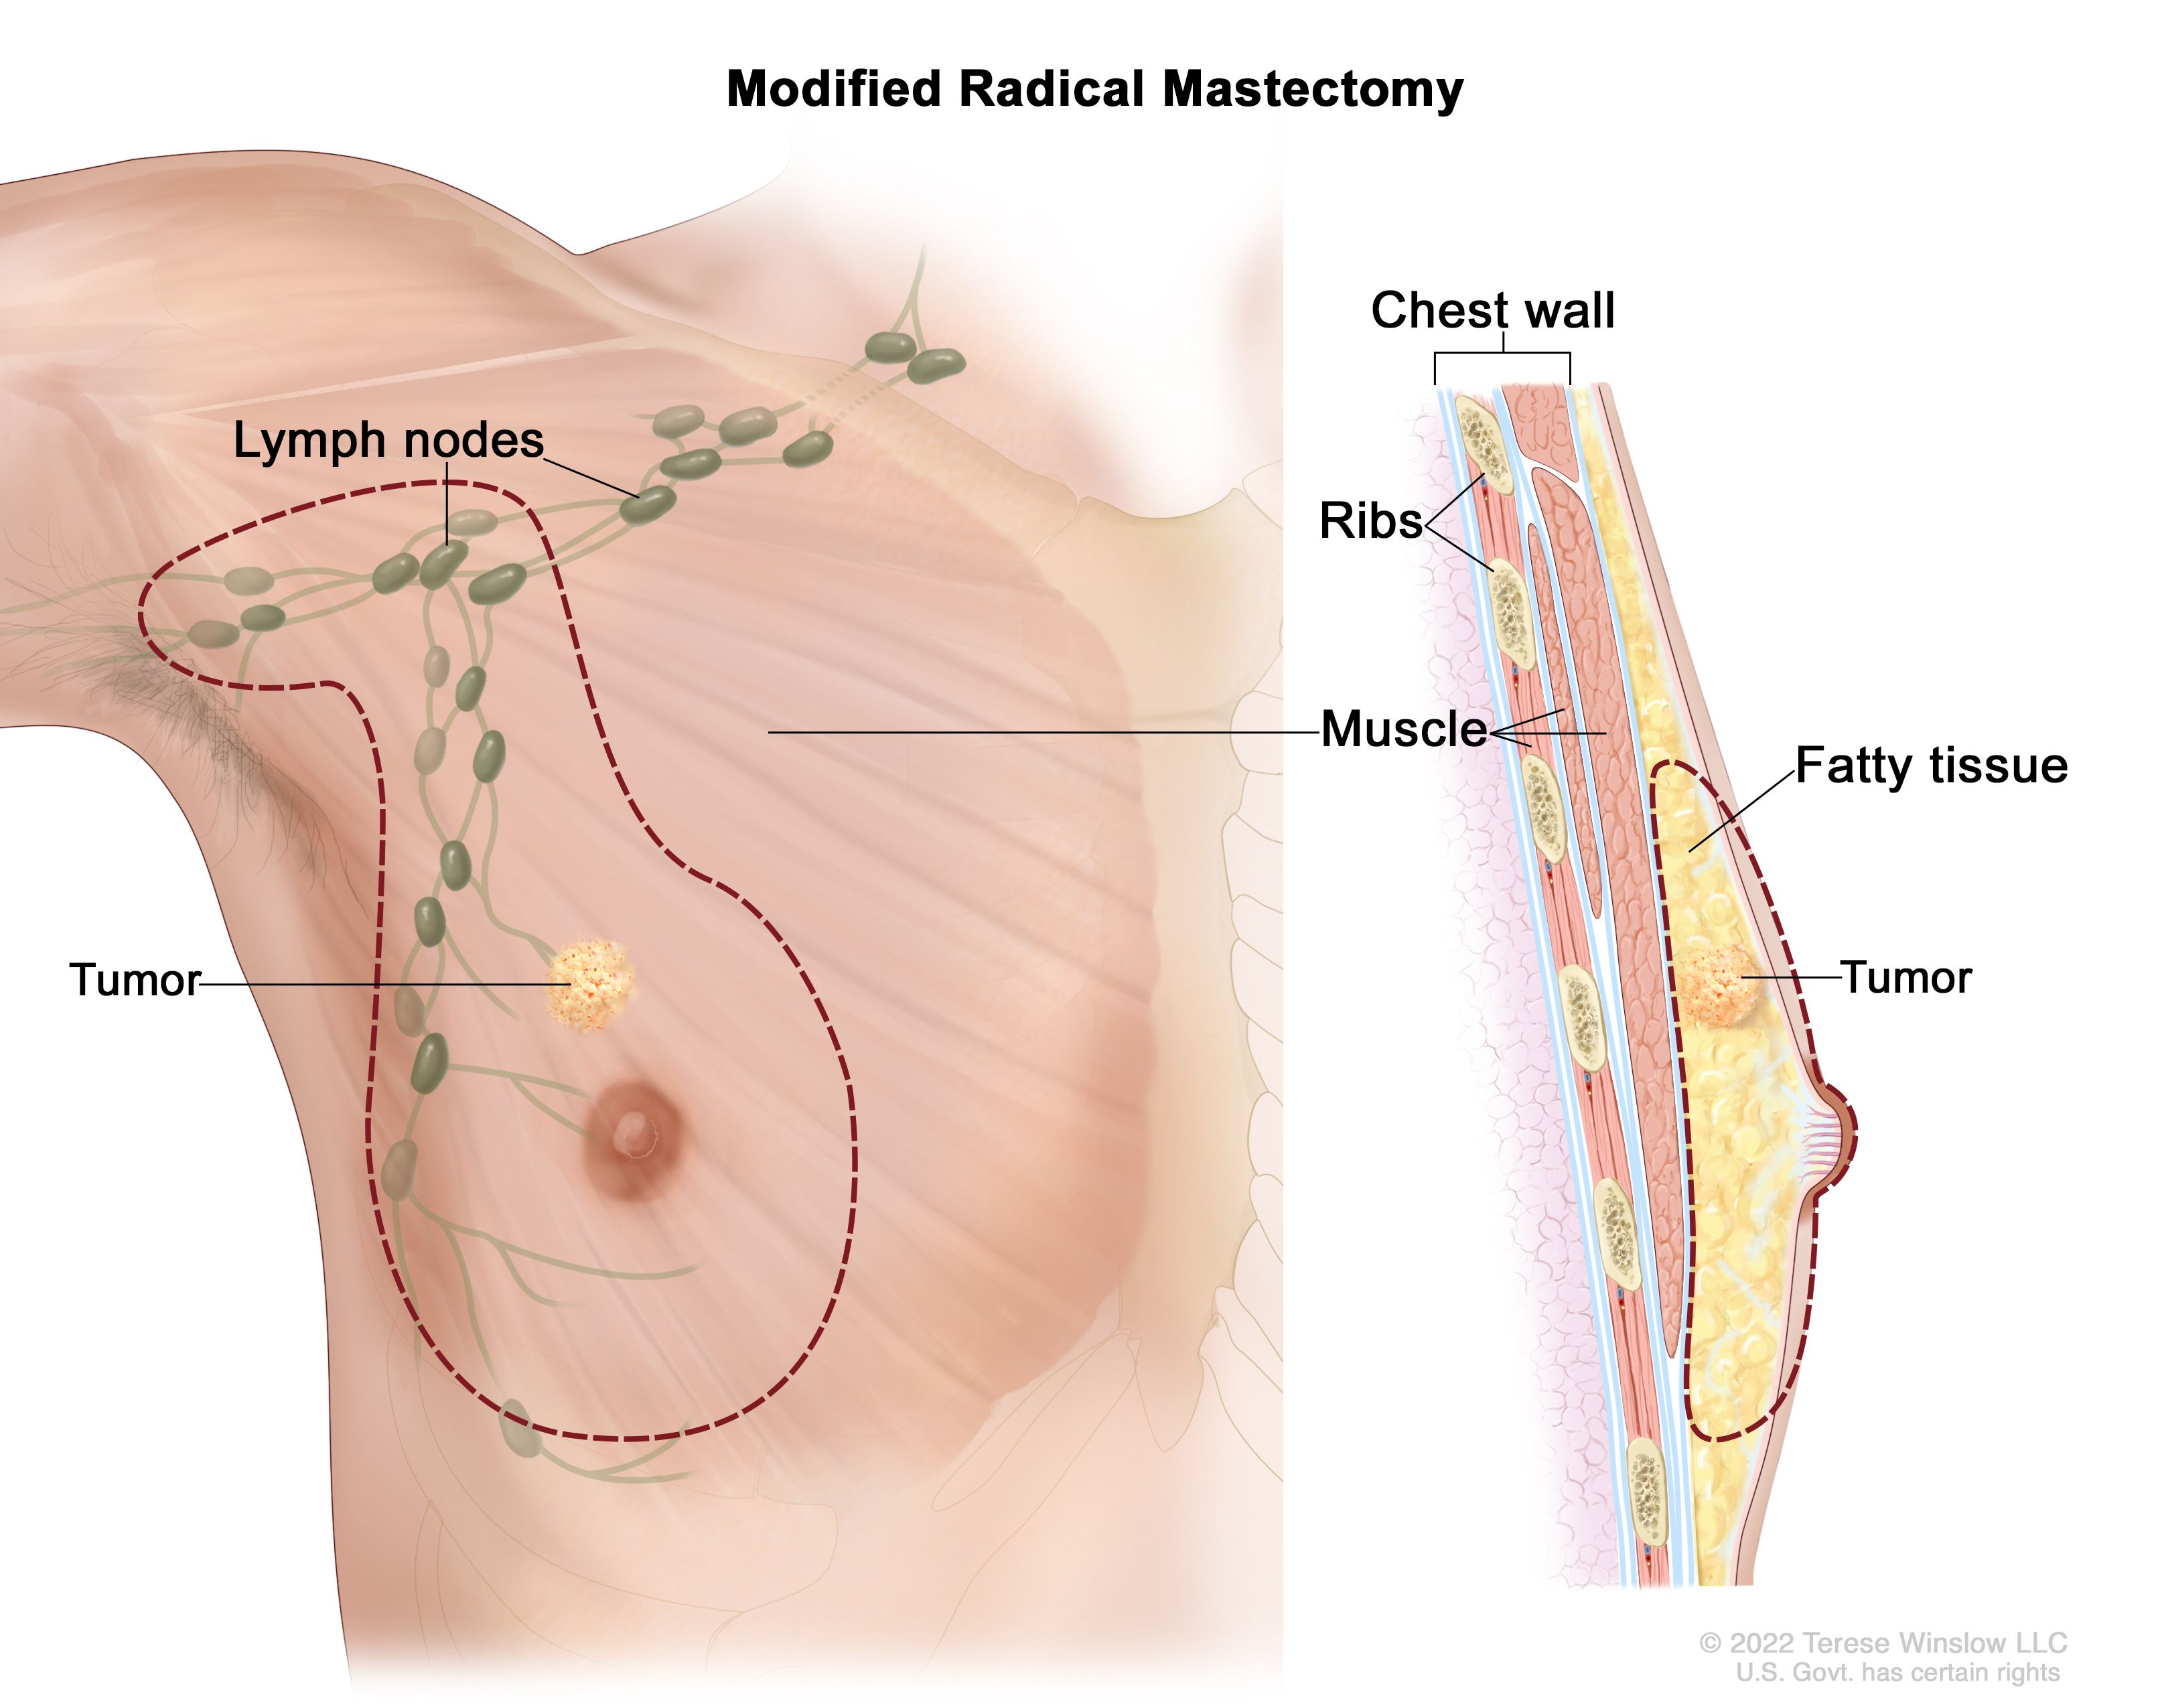 Male Breast Cancer Awareness Symptoms Breast Lymph Nodes